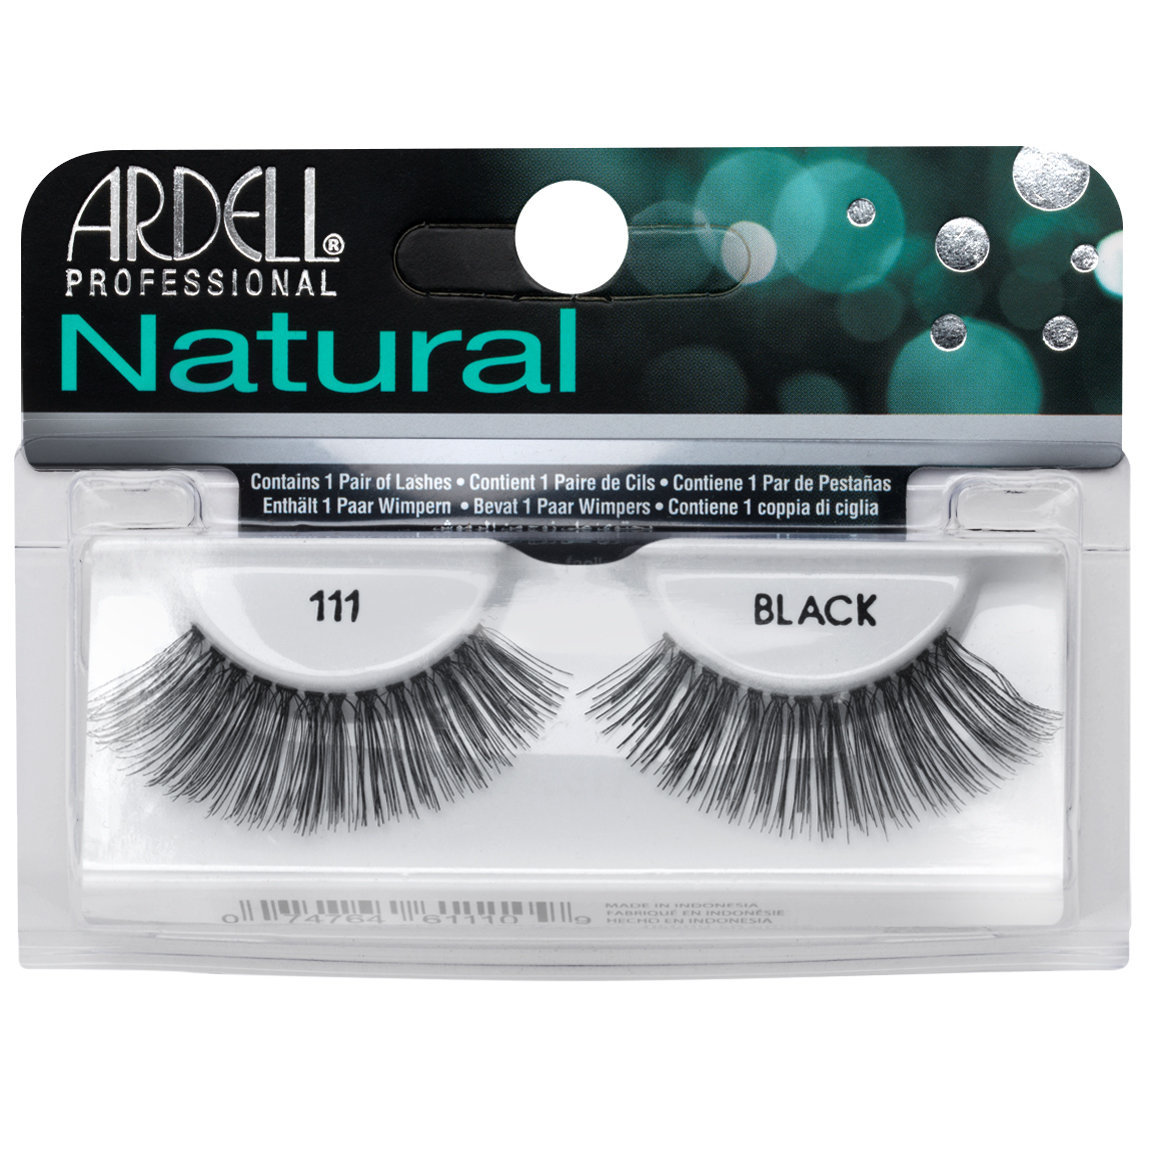 ab6a3ad9b06 Ardell Natural Lashes 111 Black | Beautylish